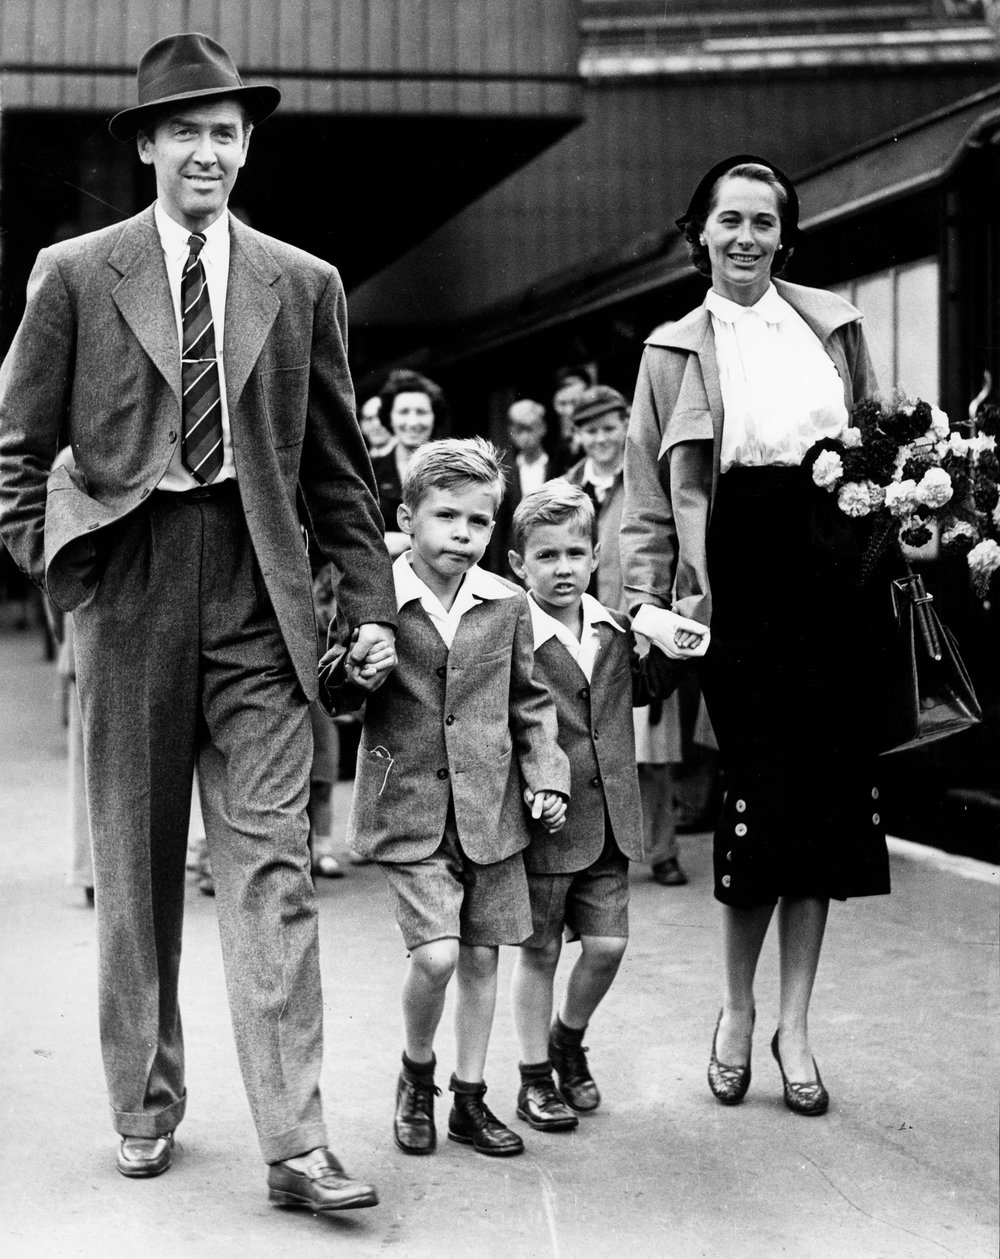 James with his family at Waterloo station in 1950